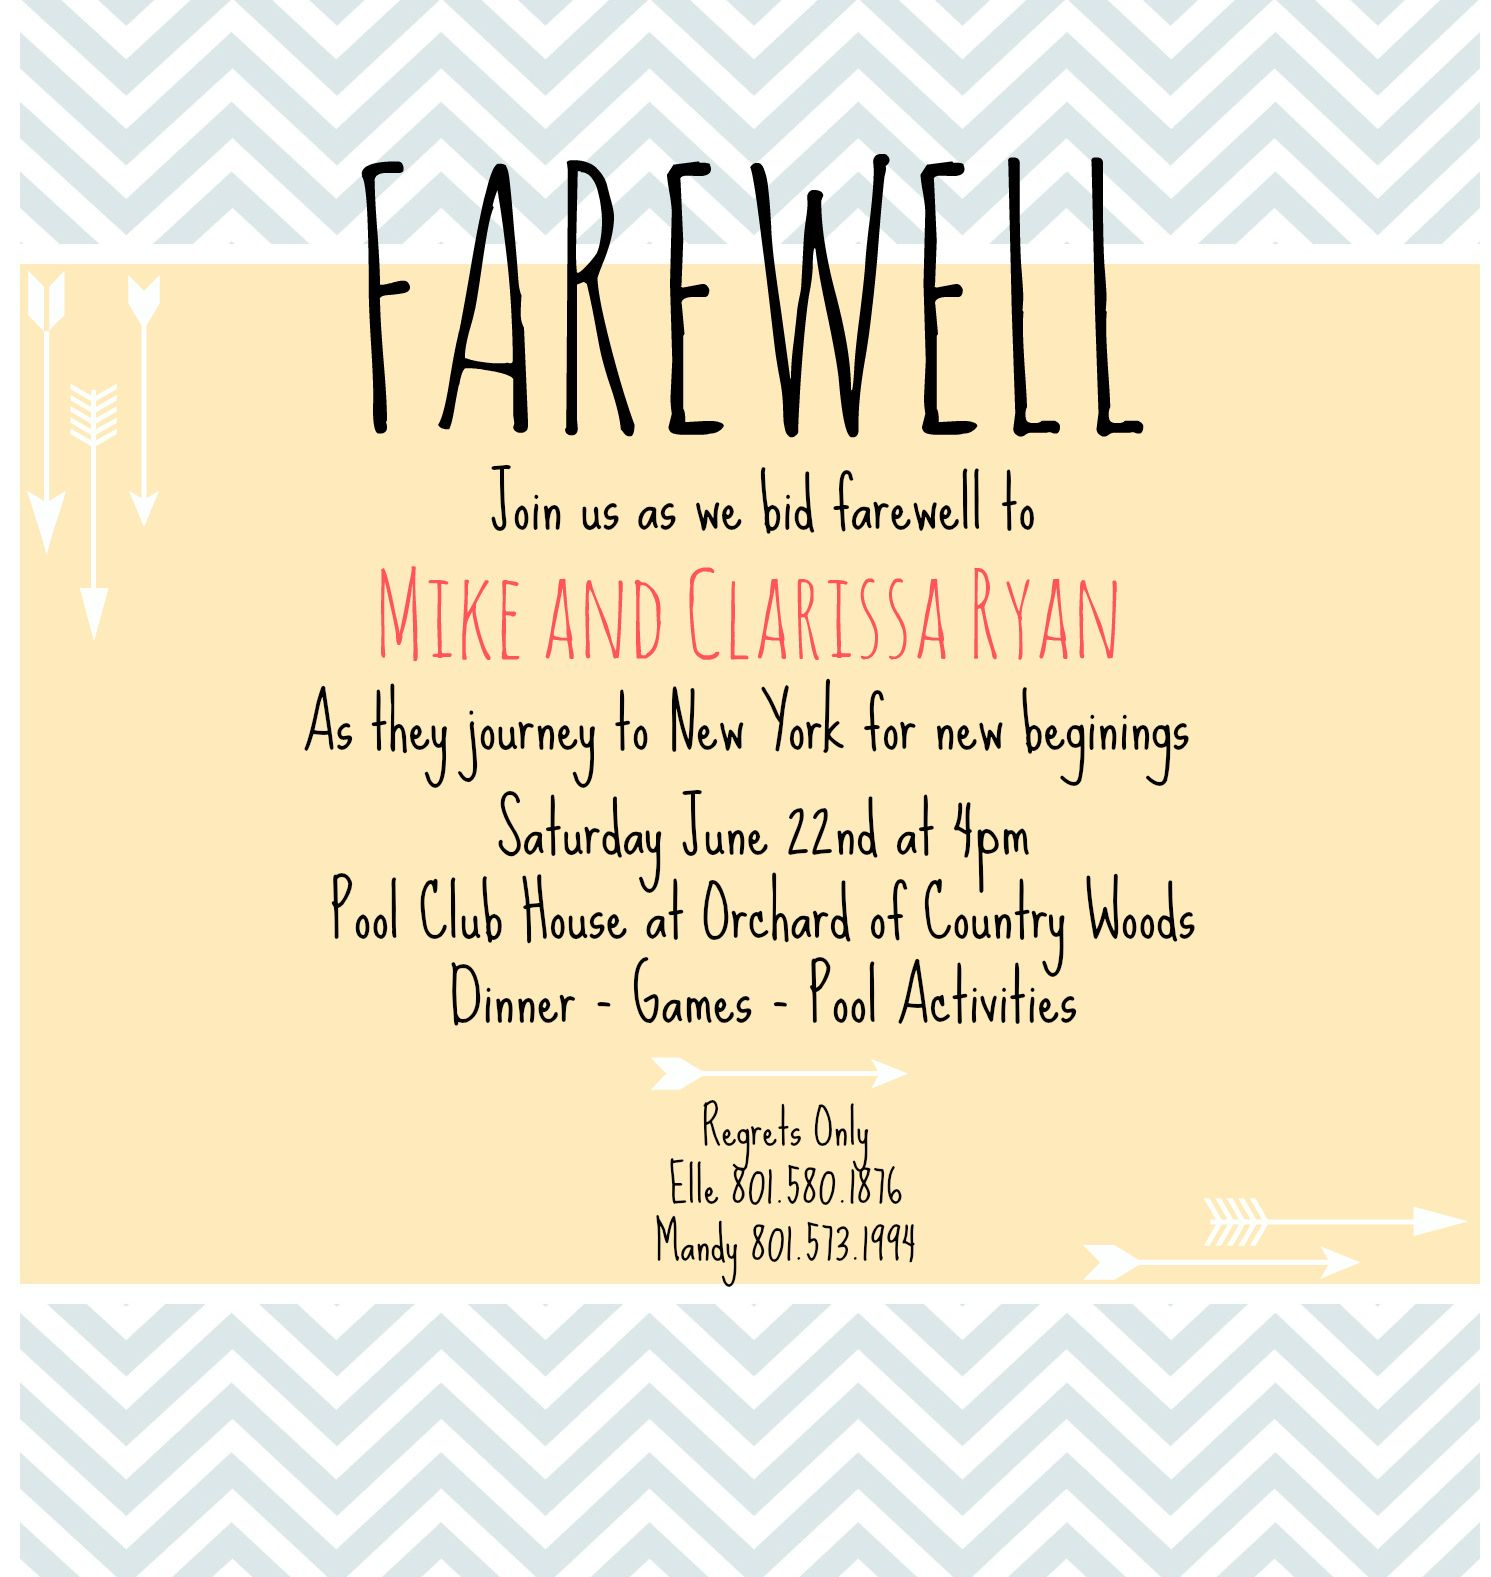 Farewell Invite Picmonkey Creations Pinterest Farewell